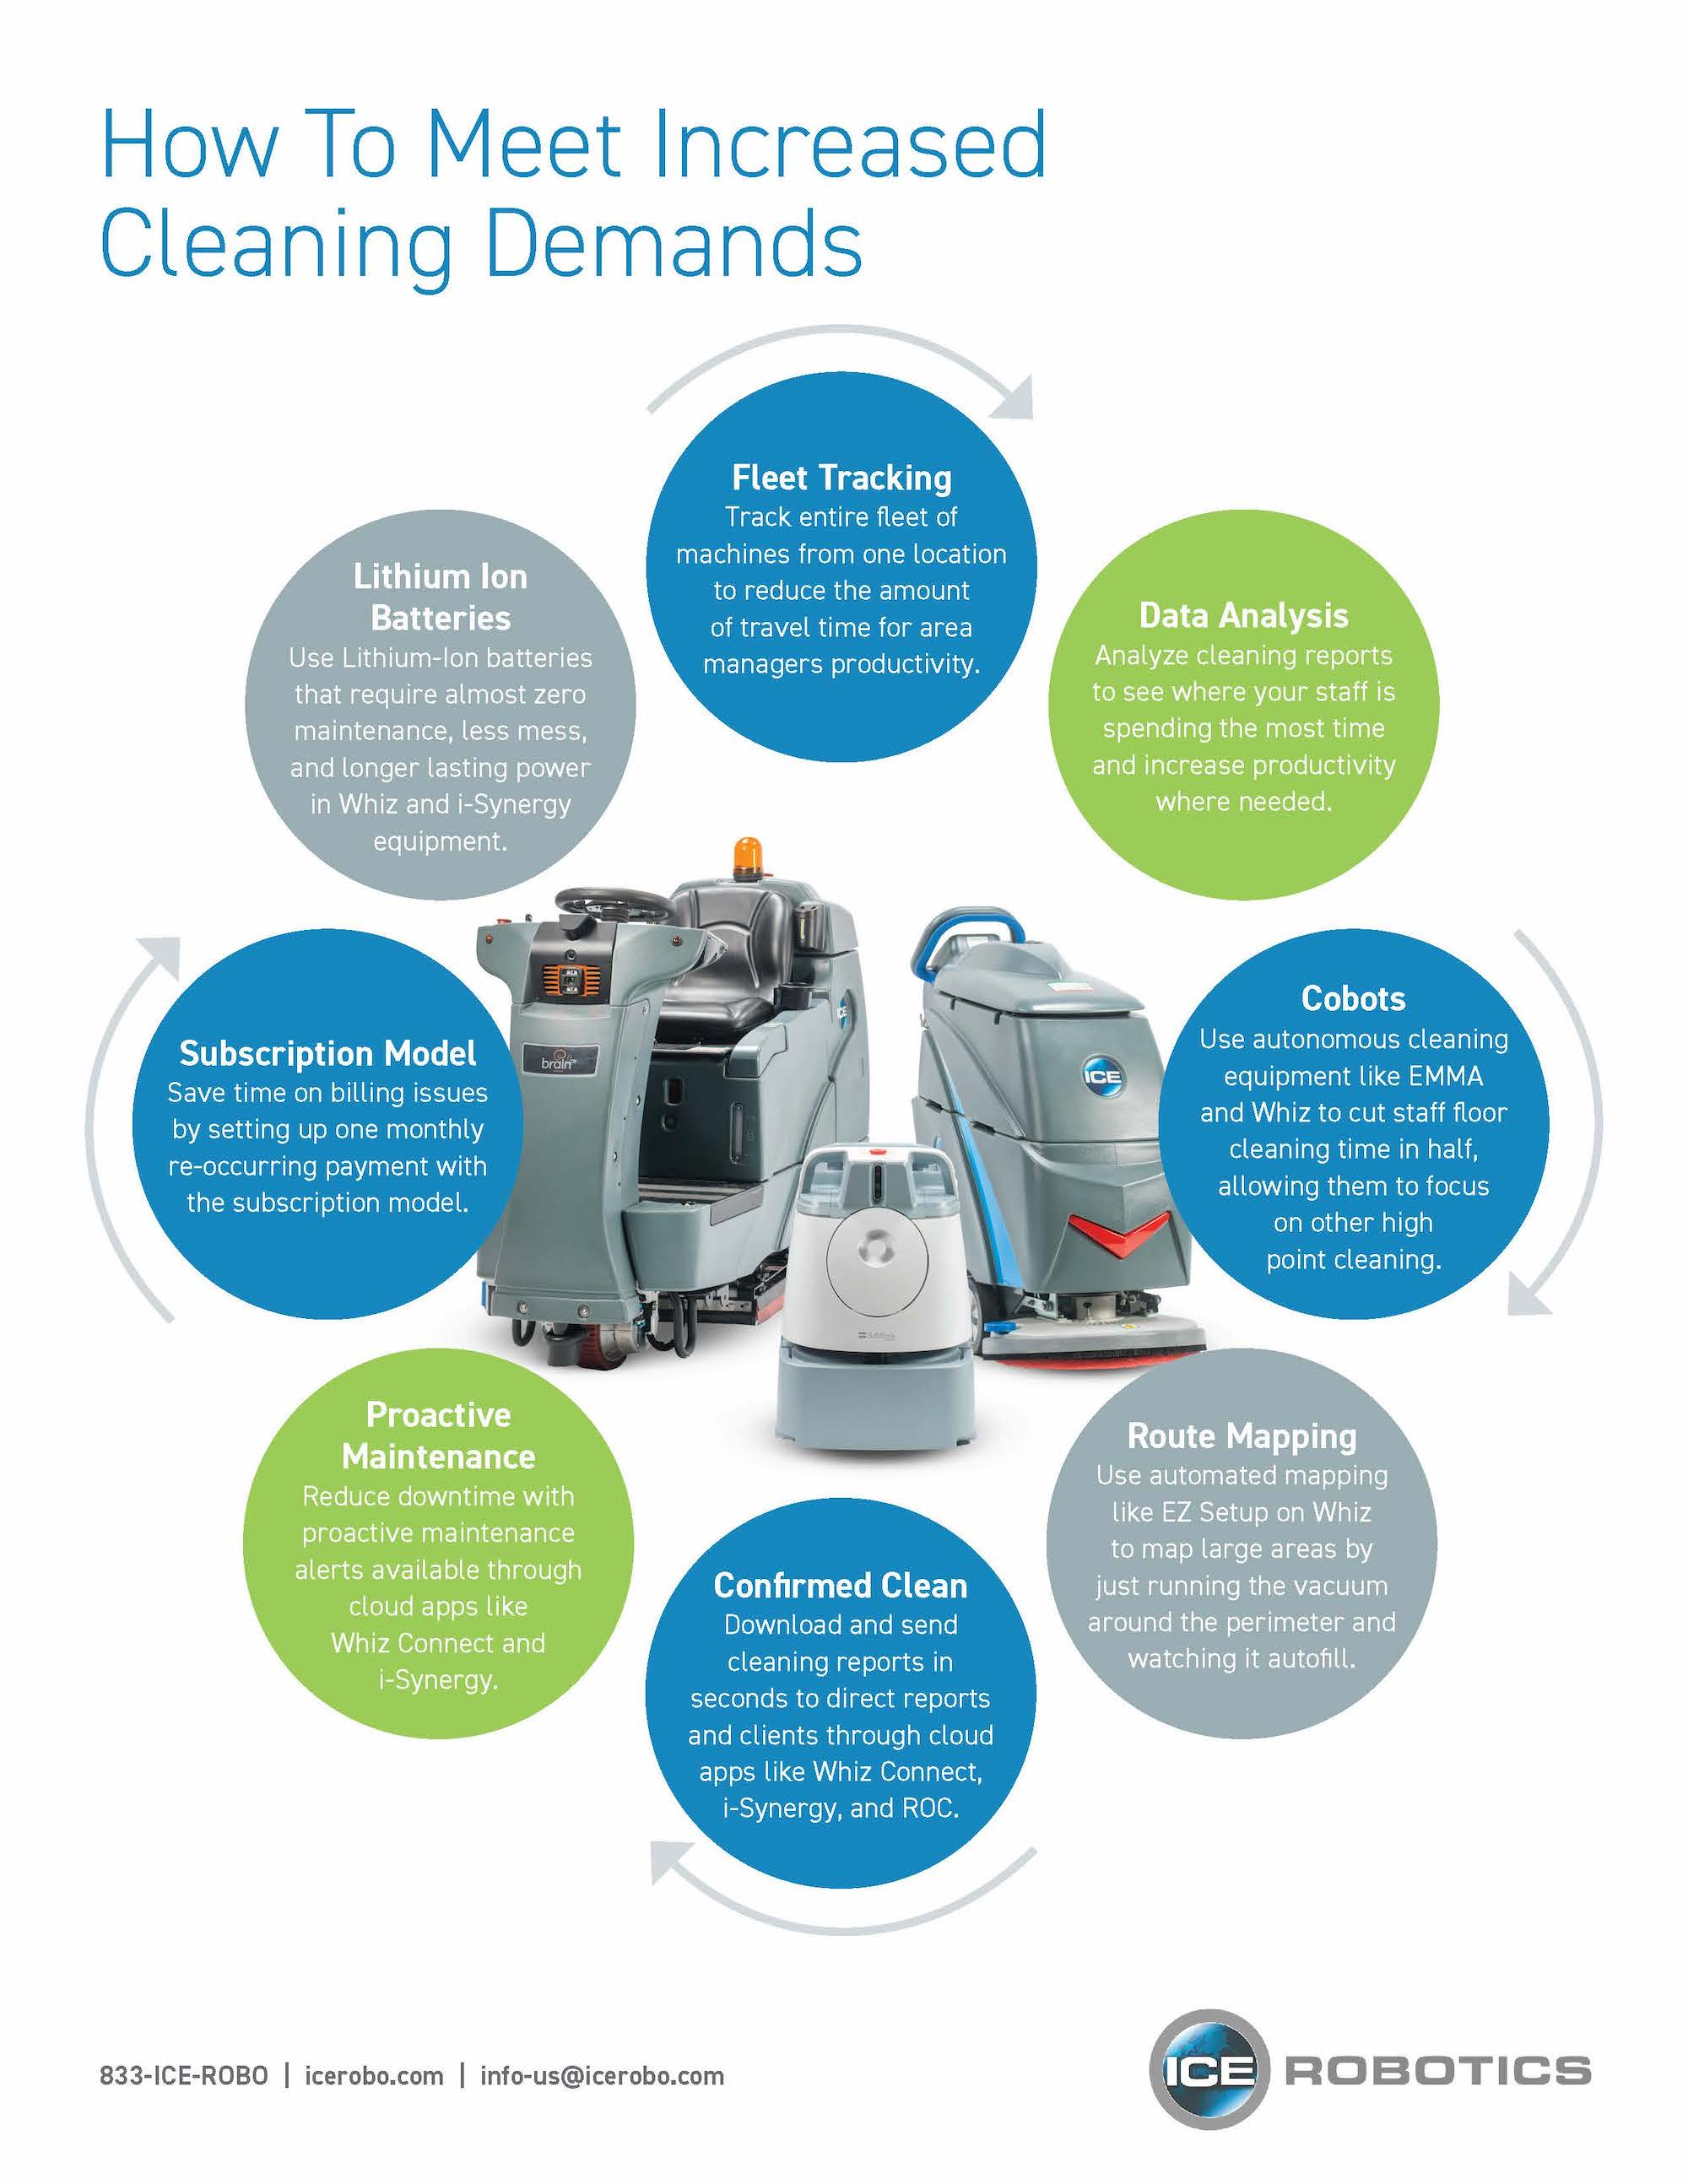 How to Meet Increased Cleaning Demands Infographic